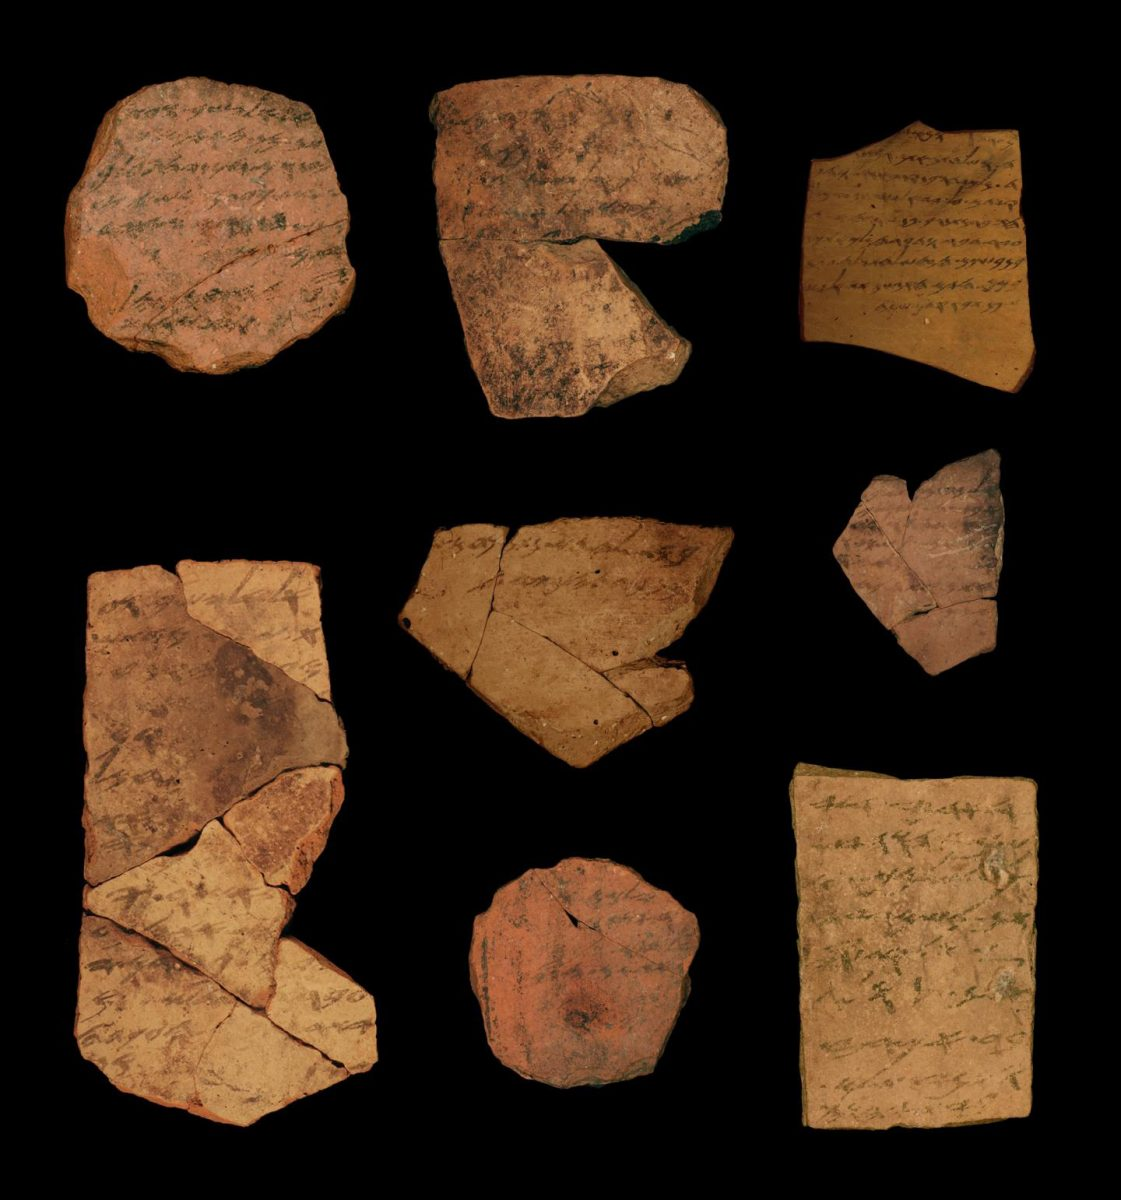 Examples of Hebrew ostraca from Arad. Credit: Michael Cordonsky, TAU and the Israel Antiquities Authority